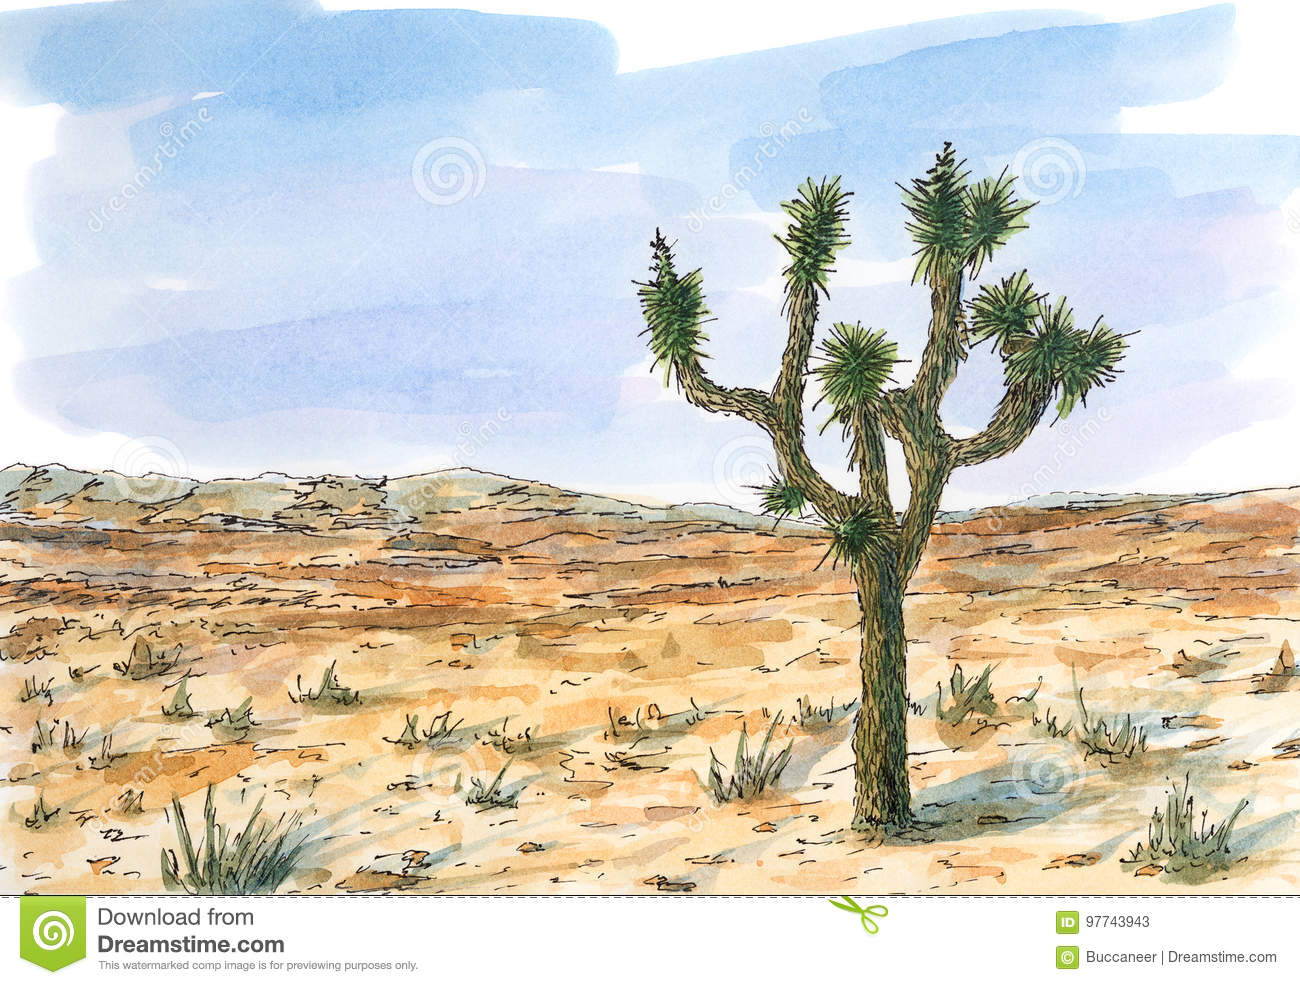 Joshua Tree Stock Illustrations 327 Joshua Tree Stock Illustrations Vectors Clipart Dreamstime Mtjp | joshua tree is the culmination of nearly a month spent exploring joshua tree national park. https www dreamstime com stock illustration desert landscape joshua tree yucca brevifolia ink watercolor rough paper image97743943